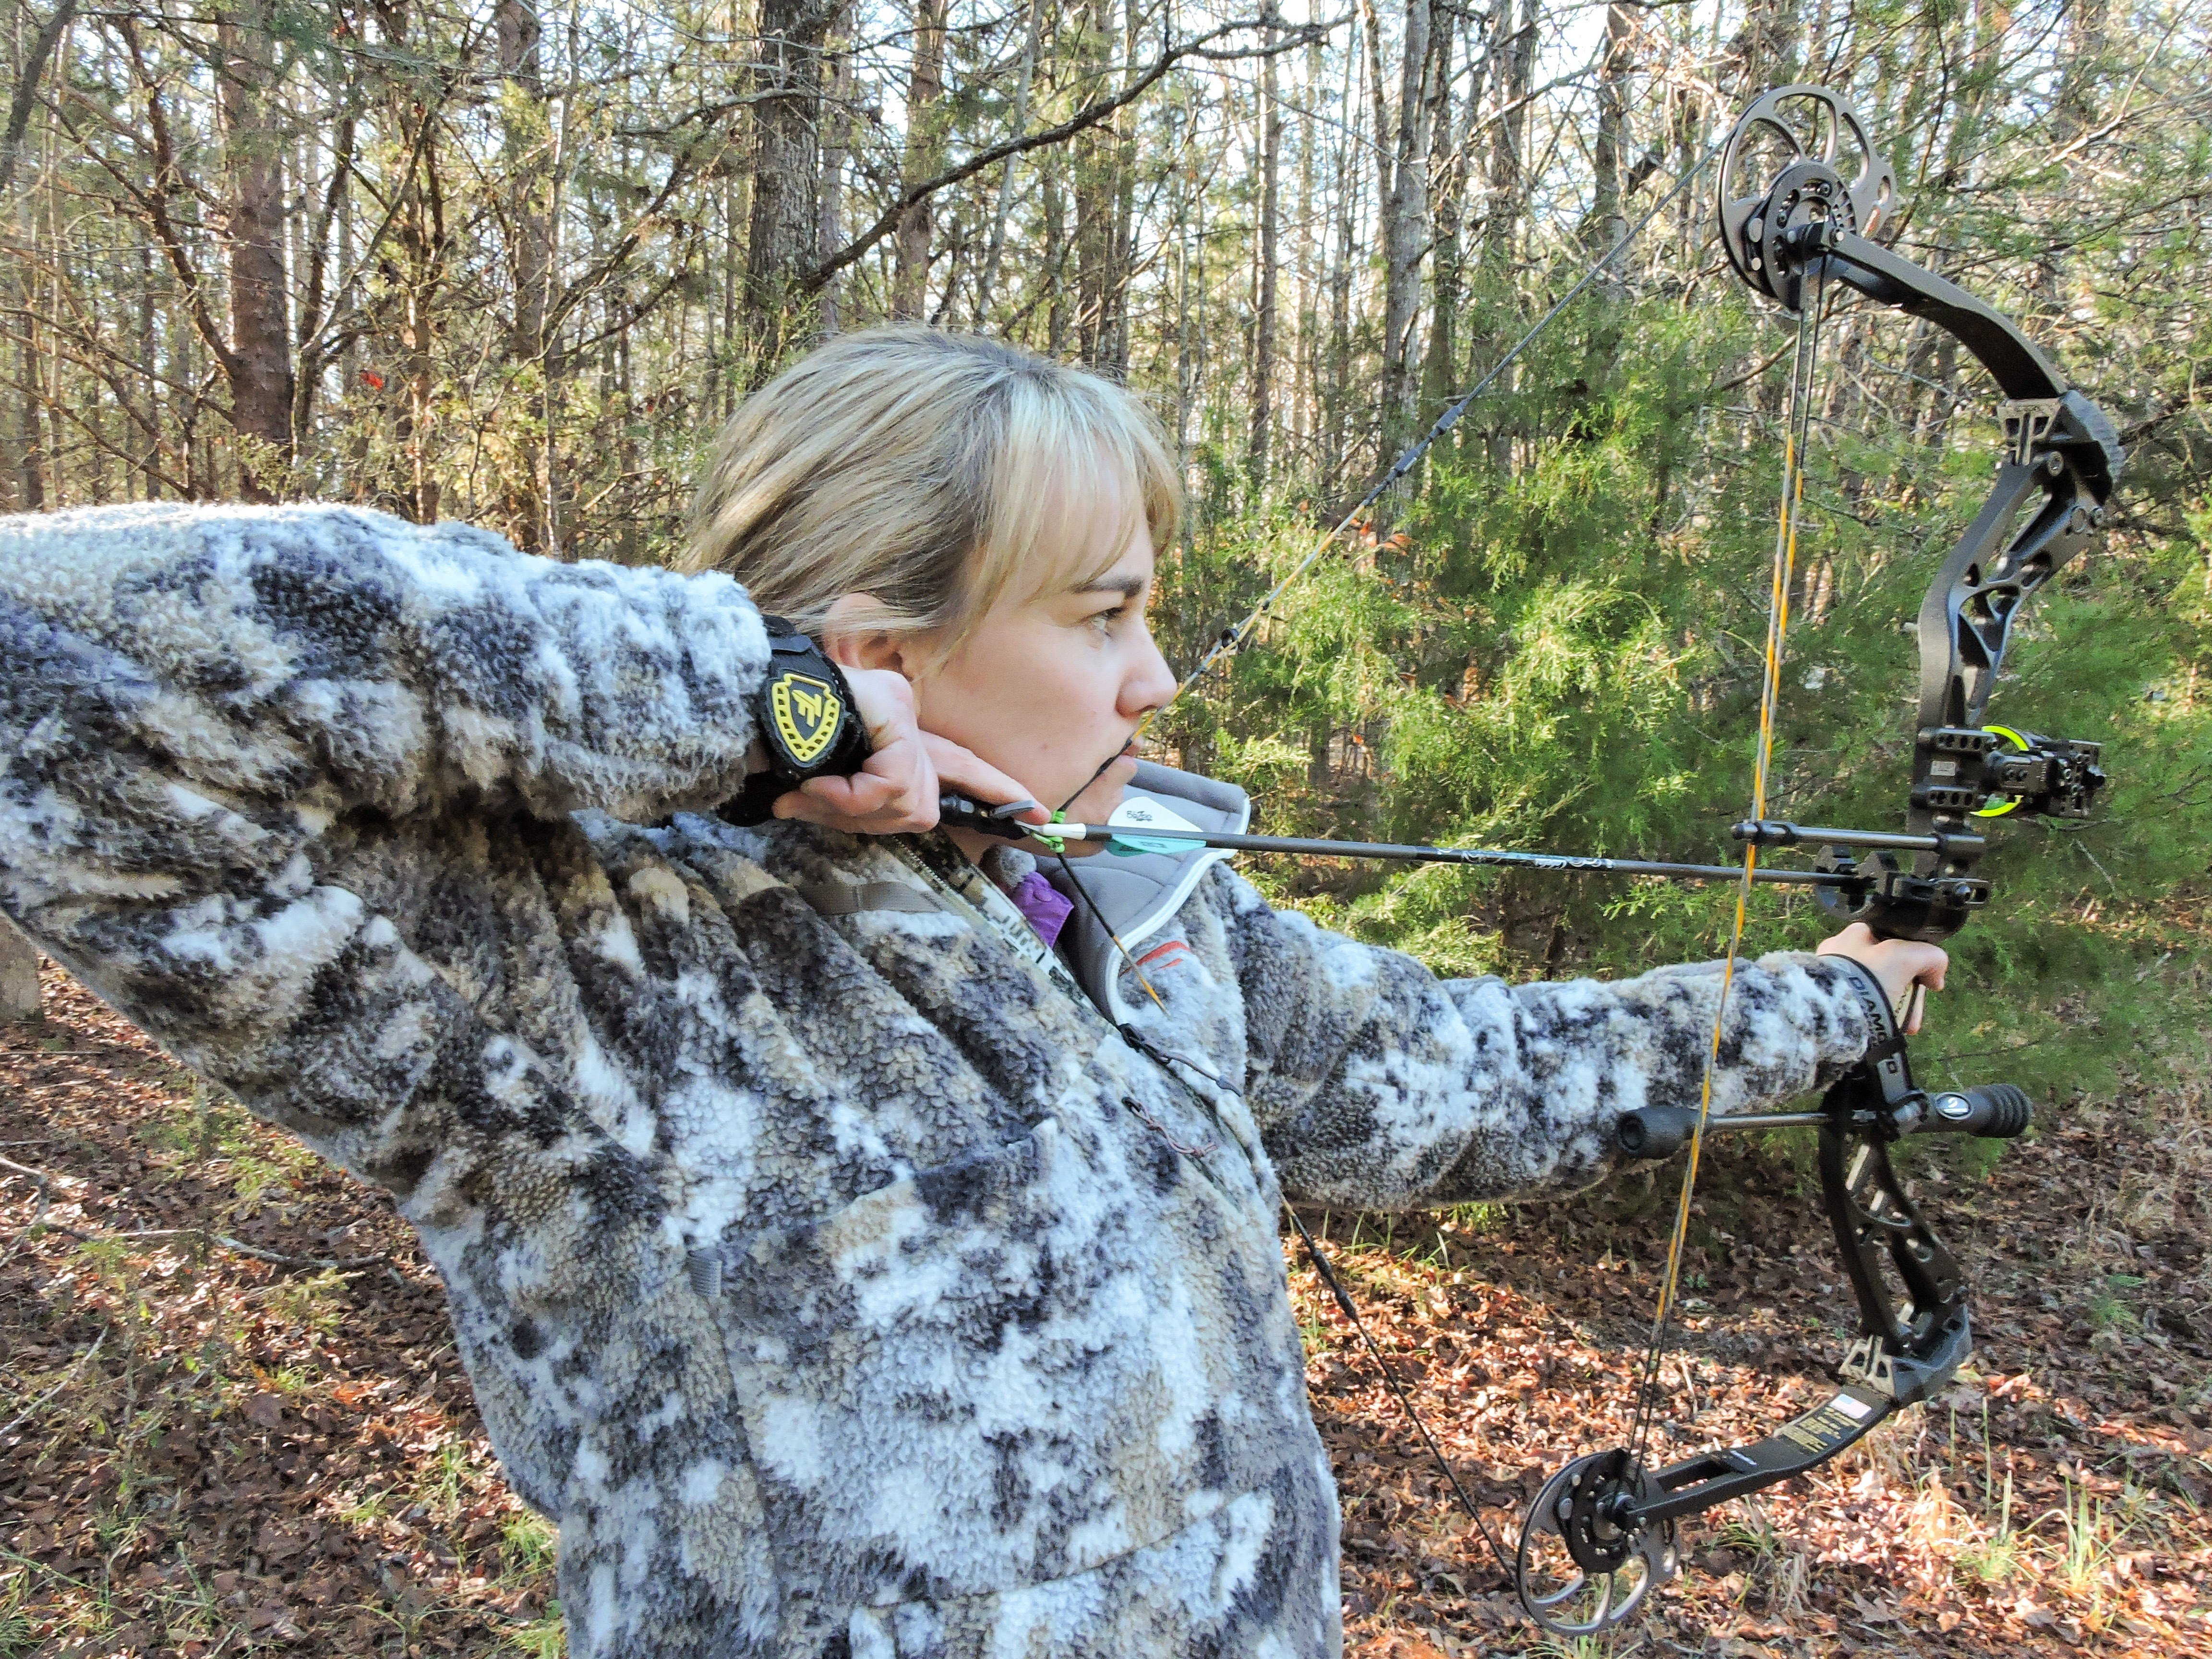 Bowhunting for Beginners: An Insiders Guide on How to Get Started